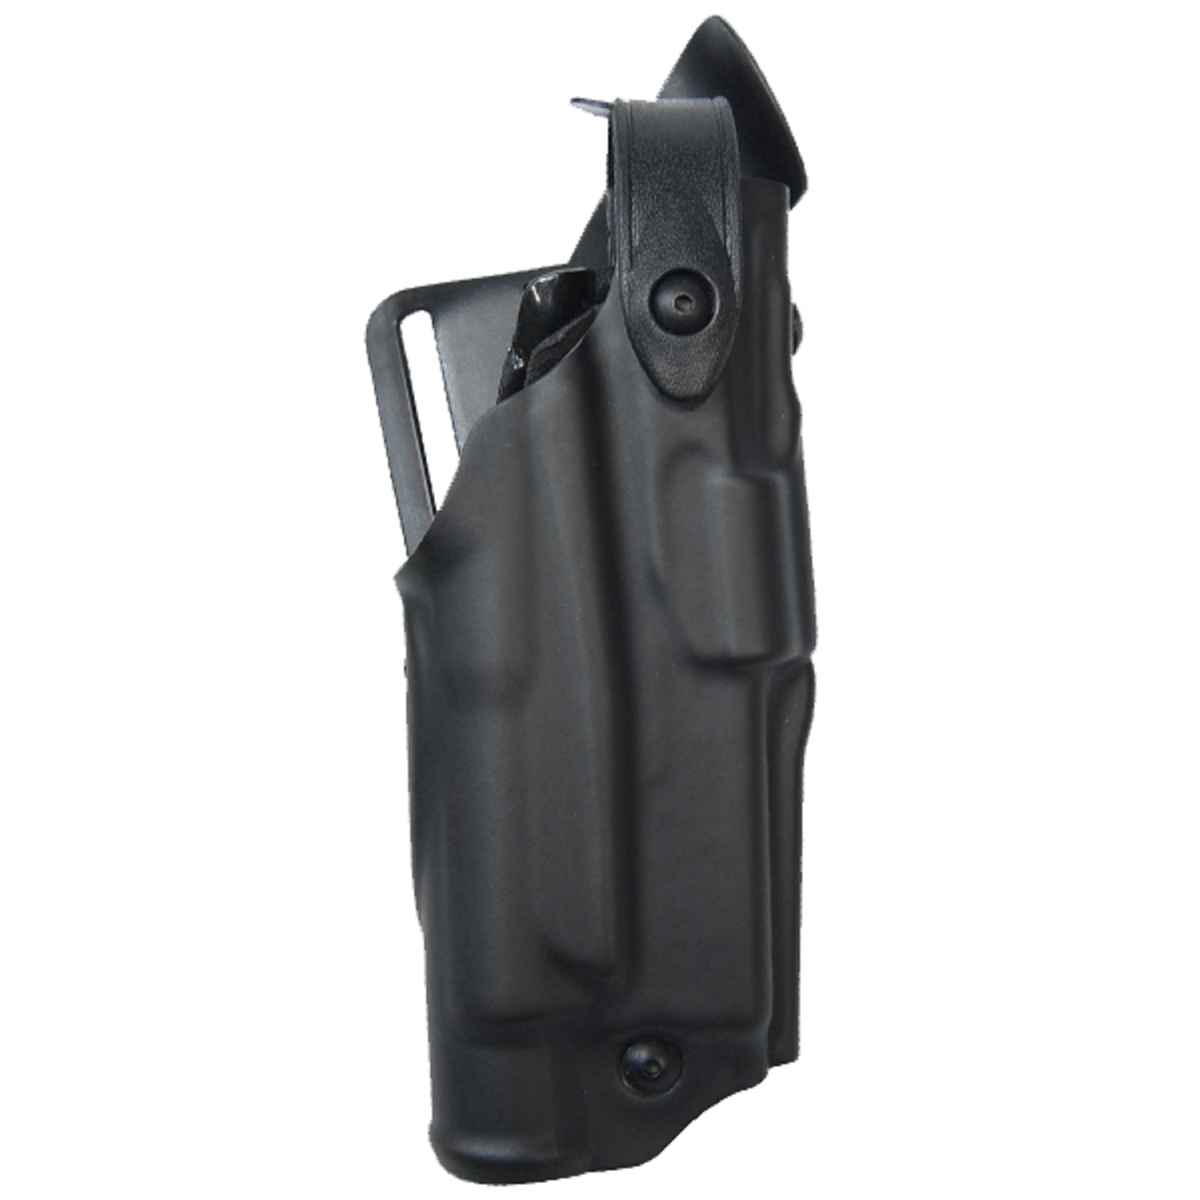 Safariland 6360 ALS SLS Holster Plain Black LH Glock 17 22 by Supplier Generic